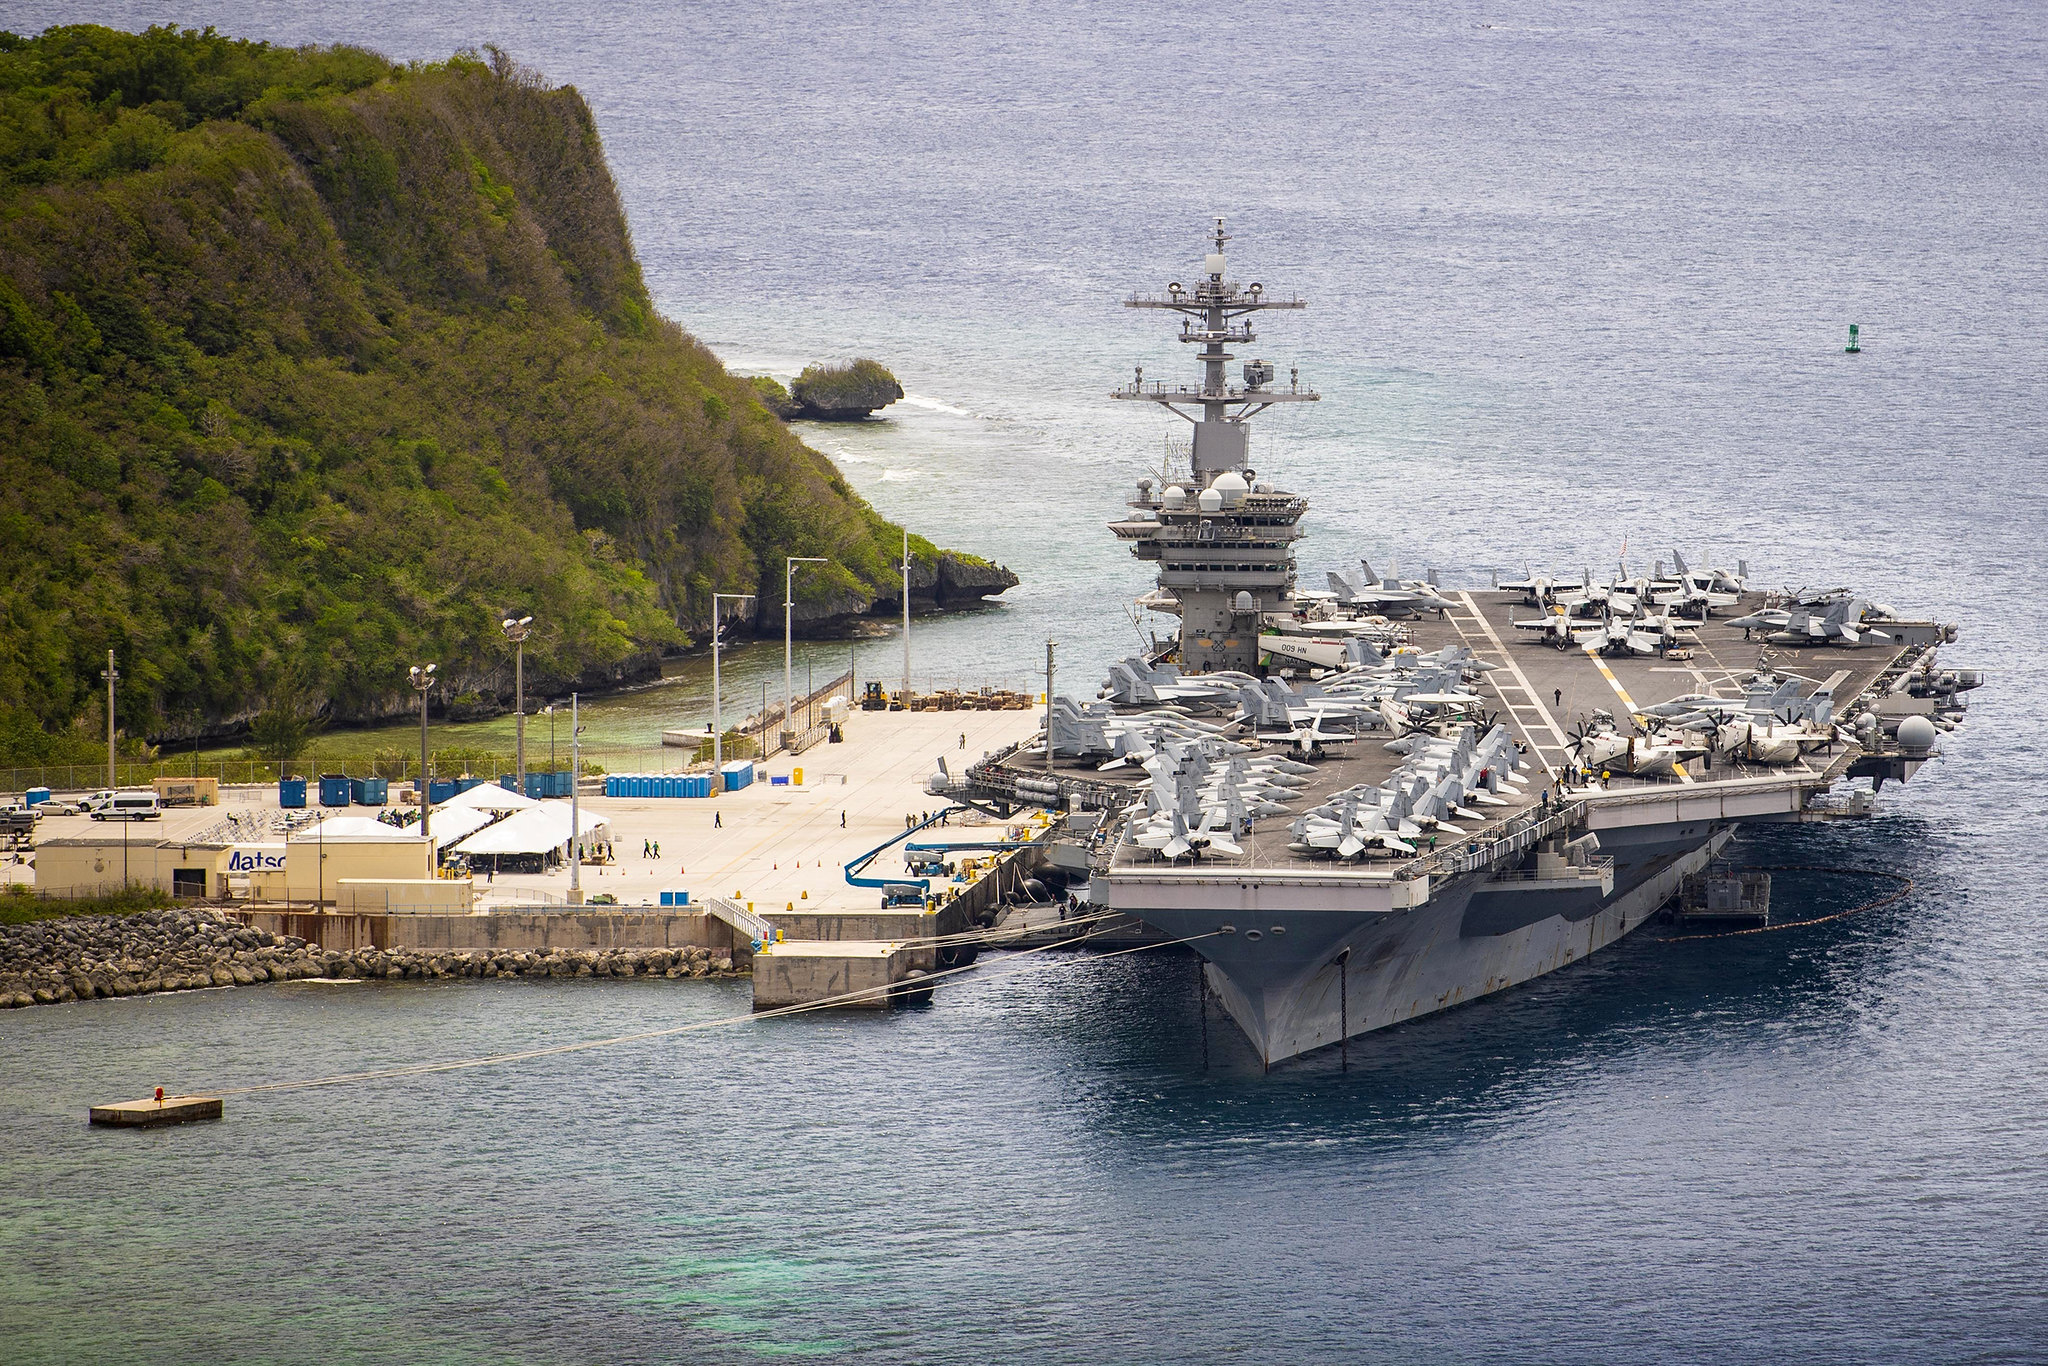 The aircraft carrier USS Theodore Roosevelt (CVN 71) is moored pier side at Naval Base Guam on May 15, 2020. (MC3 Conner D. Blake/Navy)